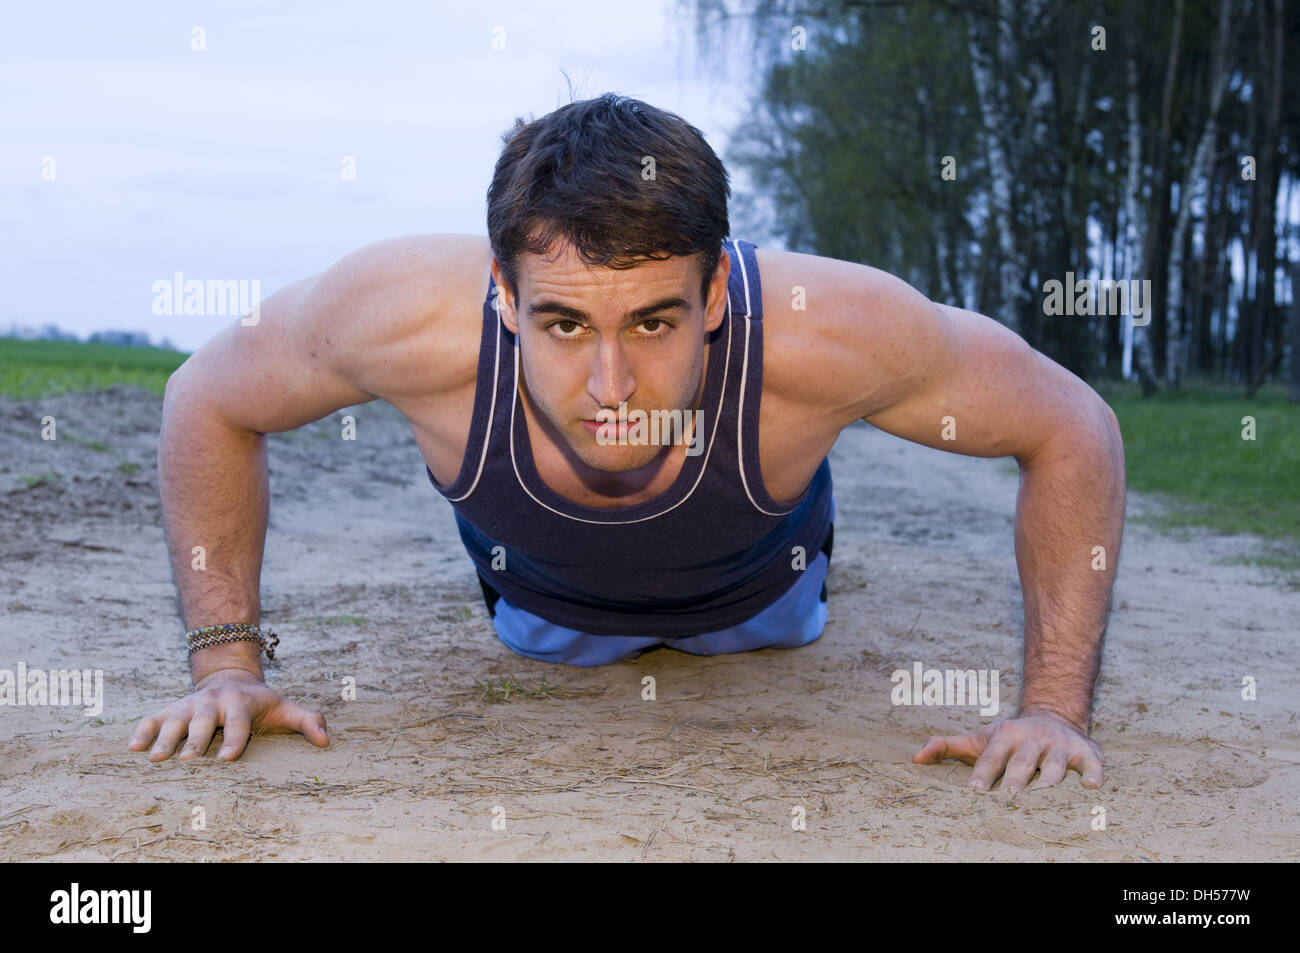 man into a sweat - Stock Image